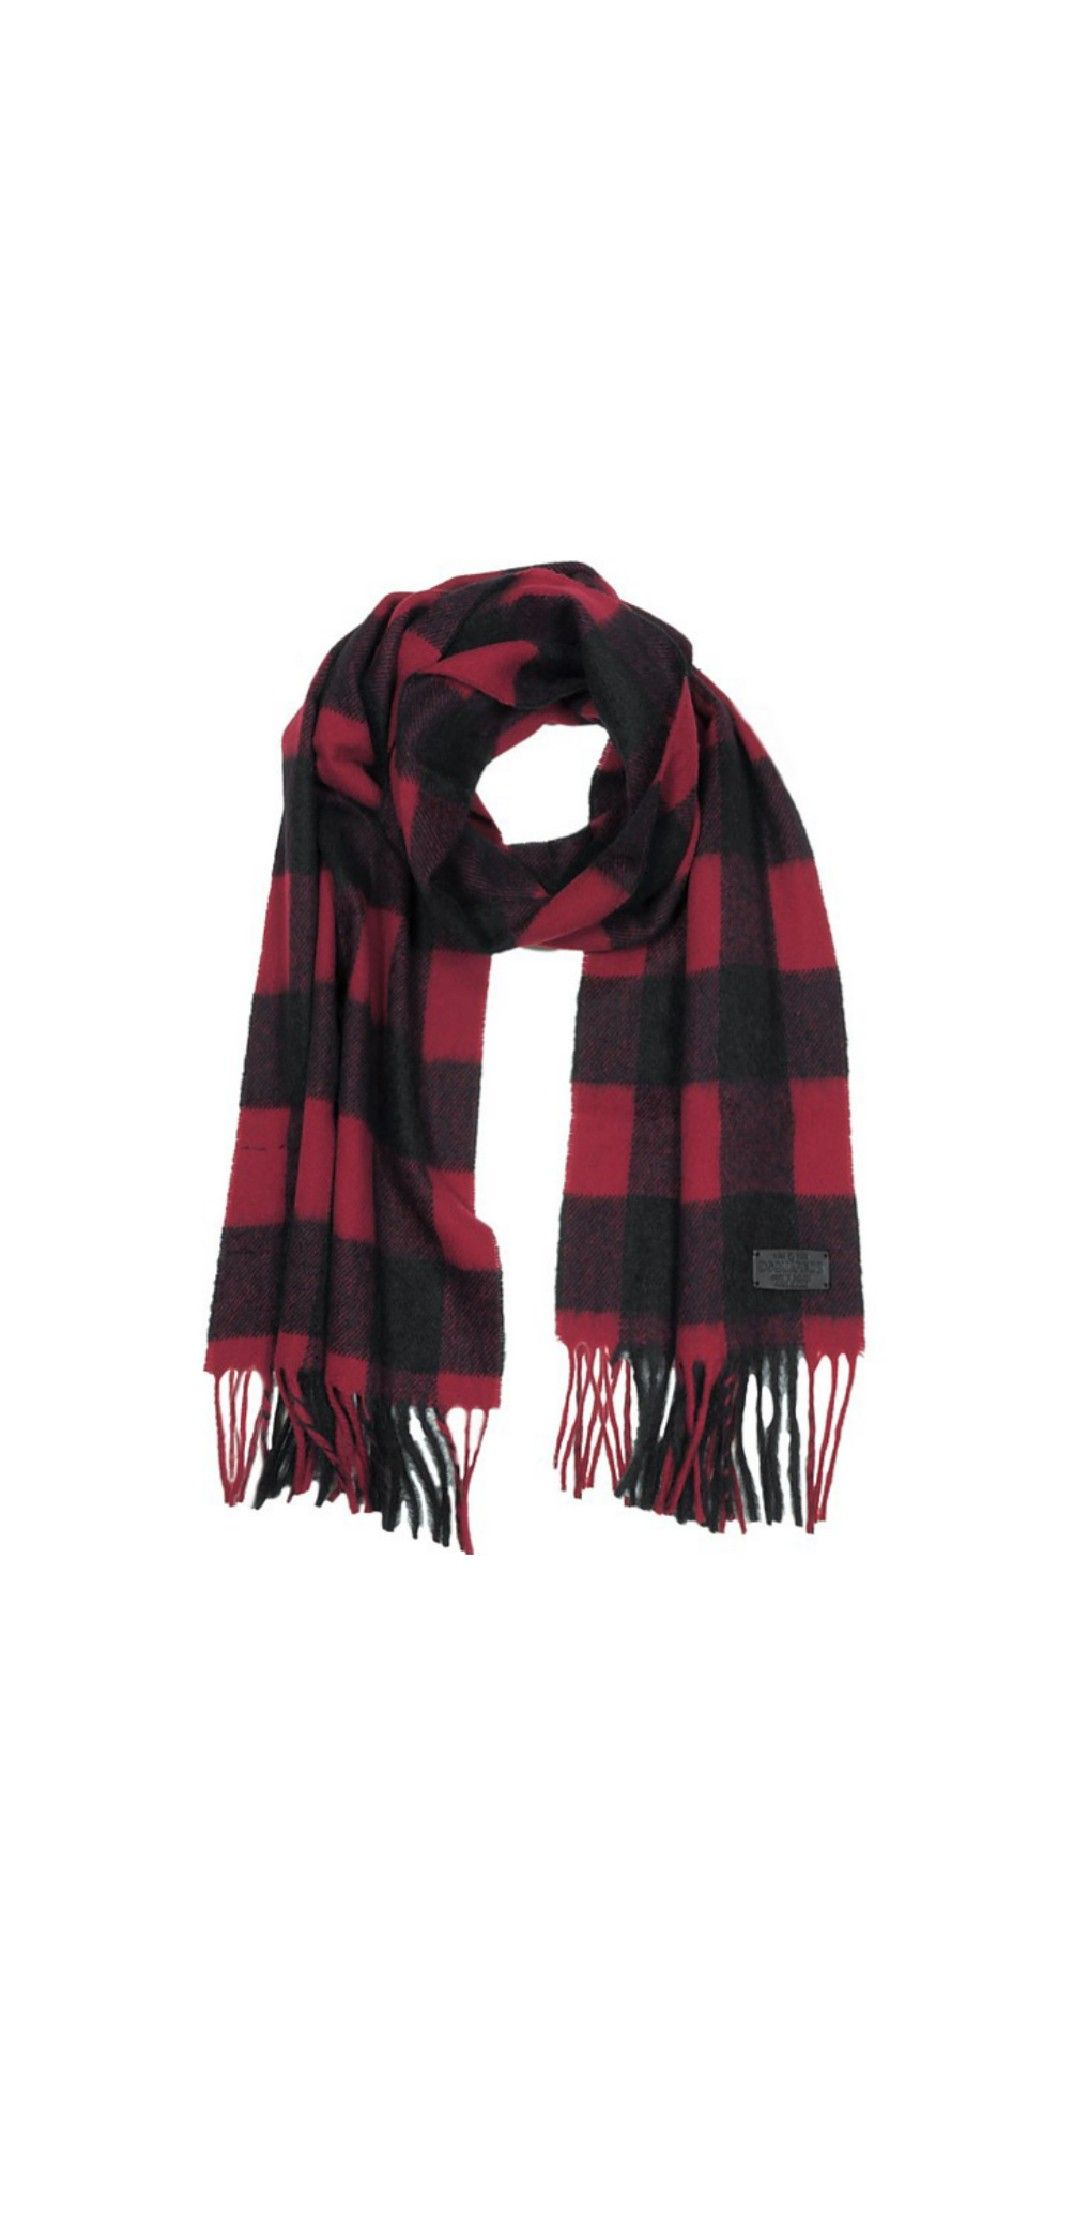 13660ad3e6 Black & Burgundy Checked Wool Blend Scarf | Autumn Inspired ...